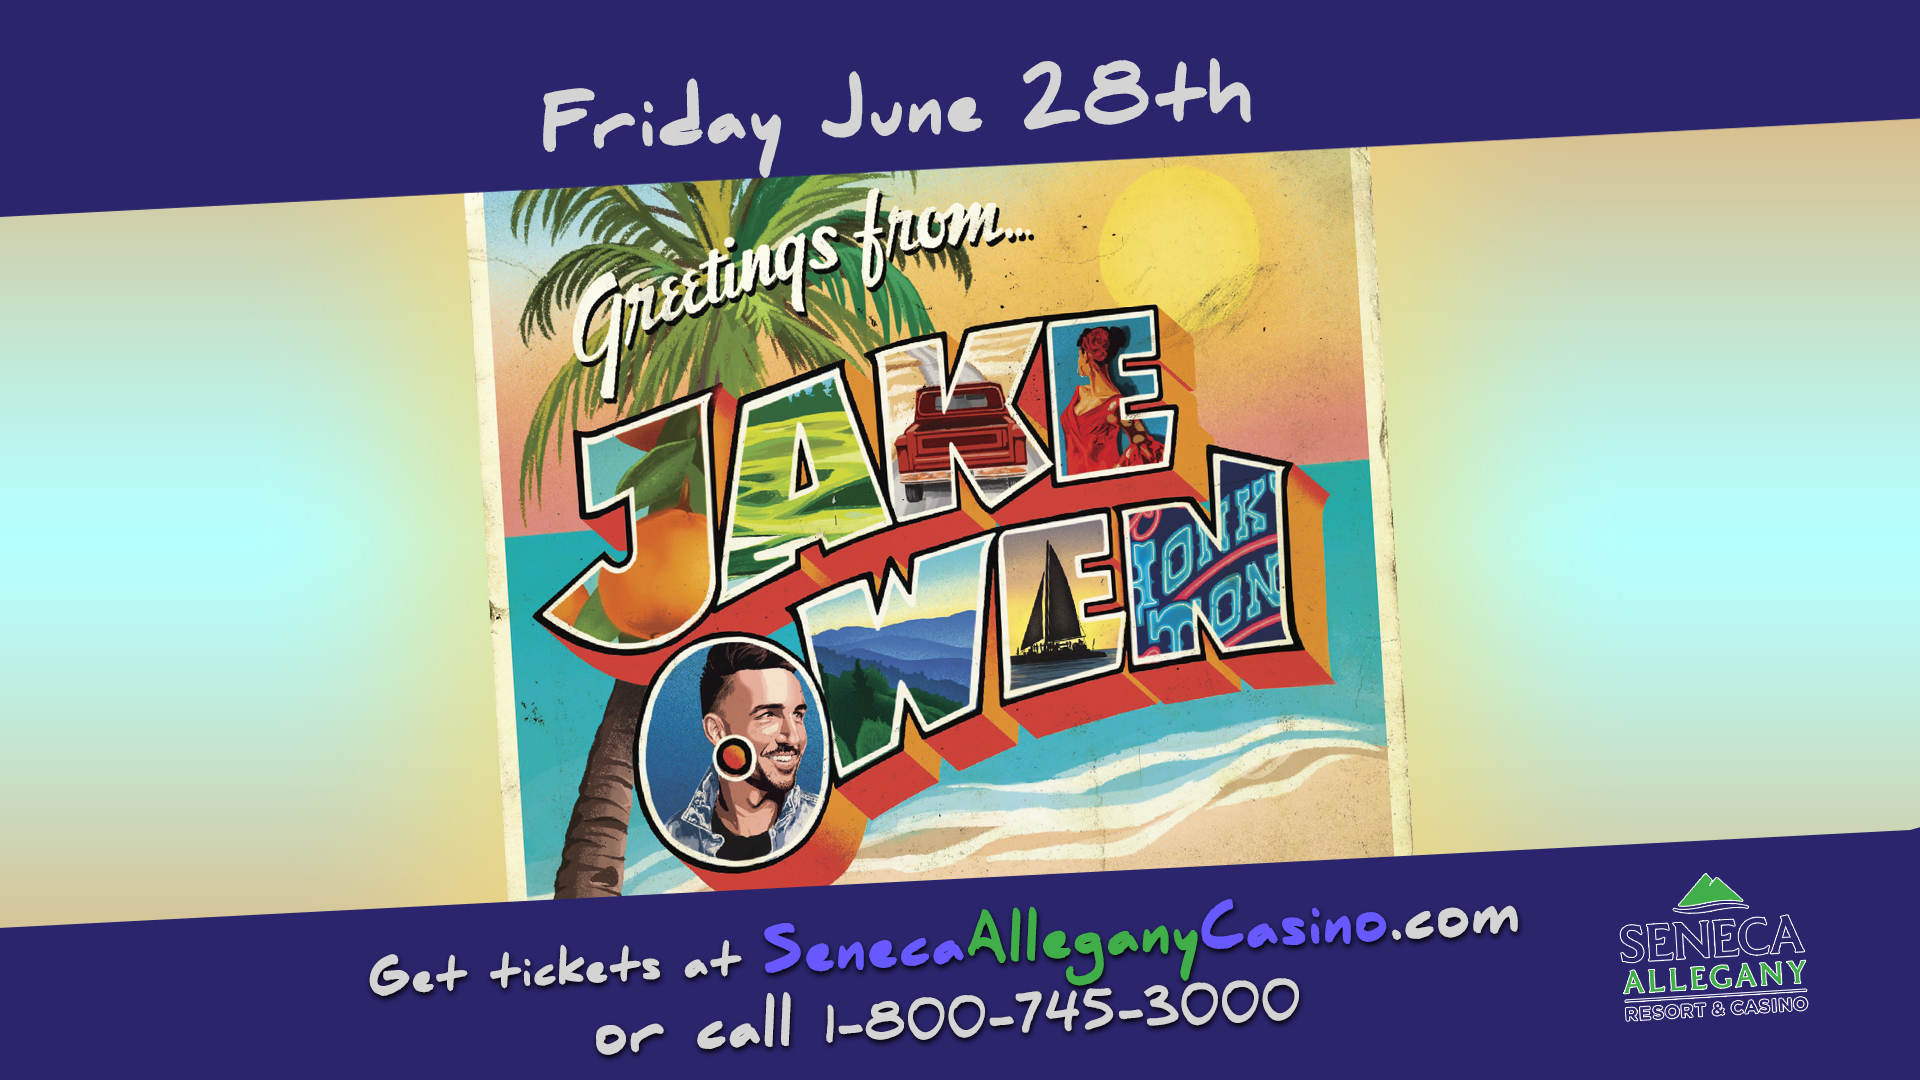 Jake Owen at the Seneca Allegany Resort and Casino